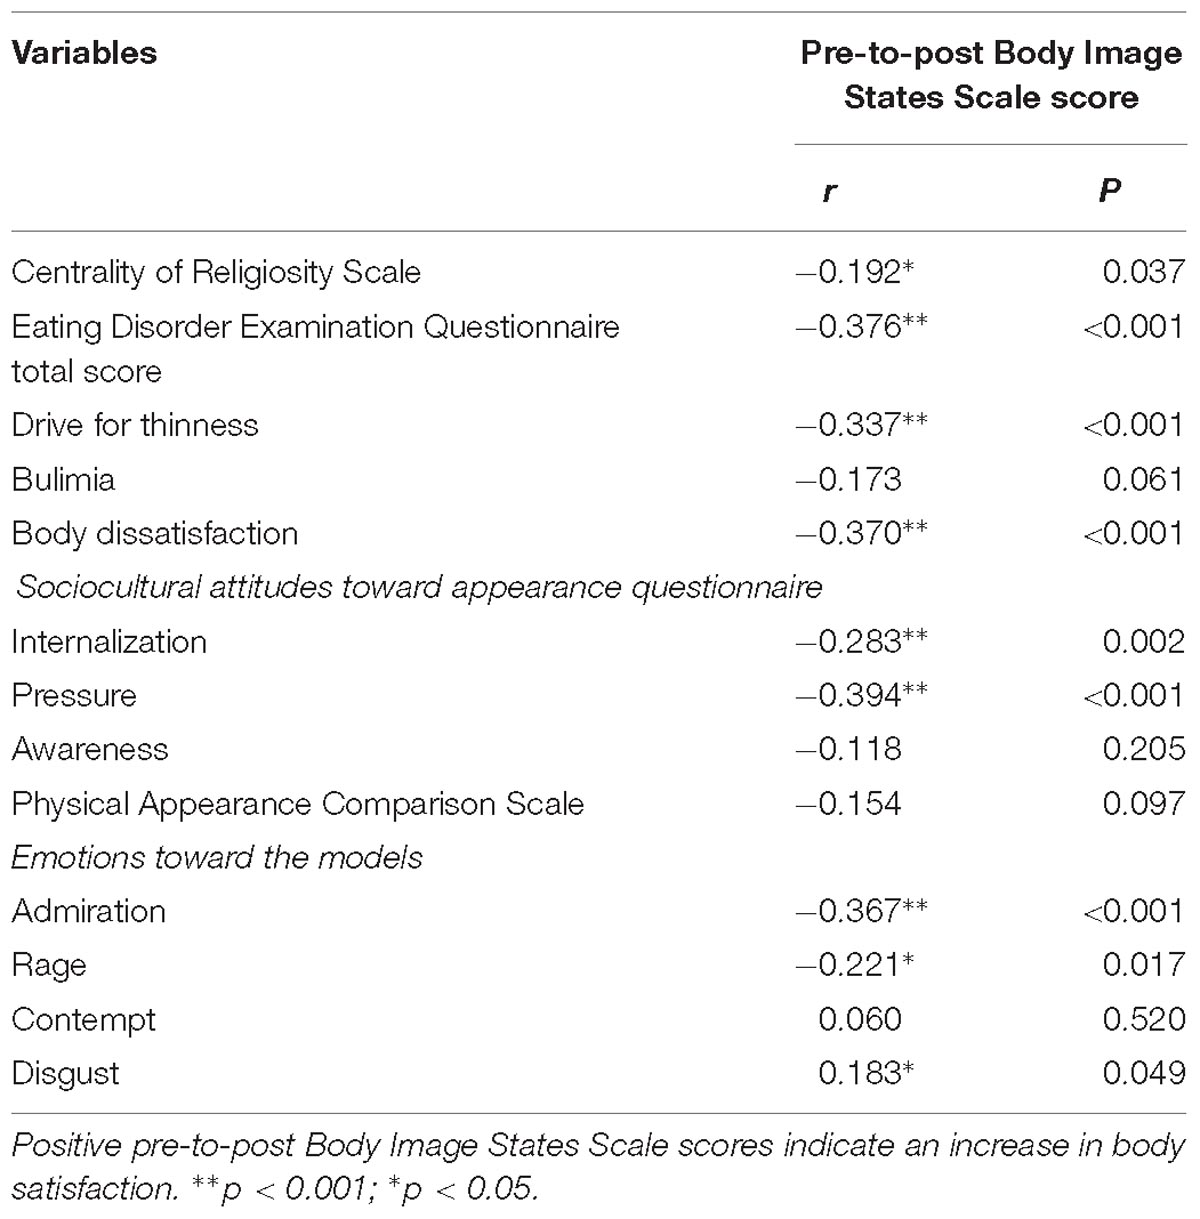 Frontiers | Thin Media Images Decrease Women's Body